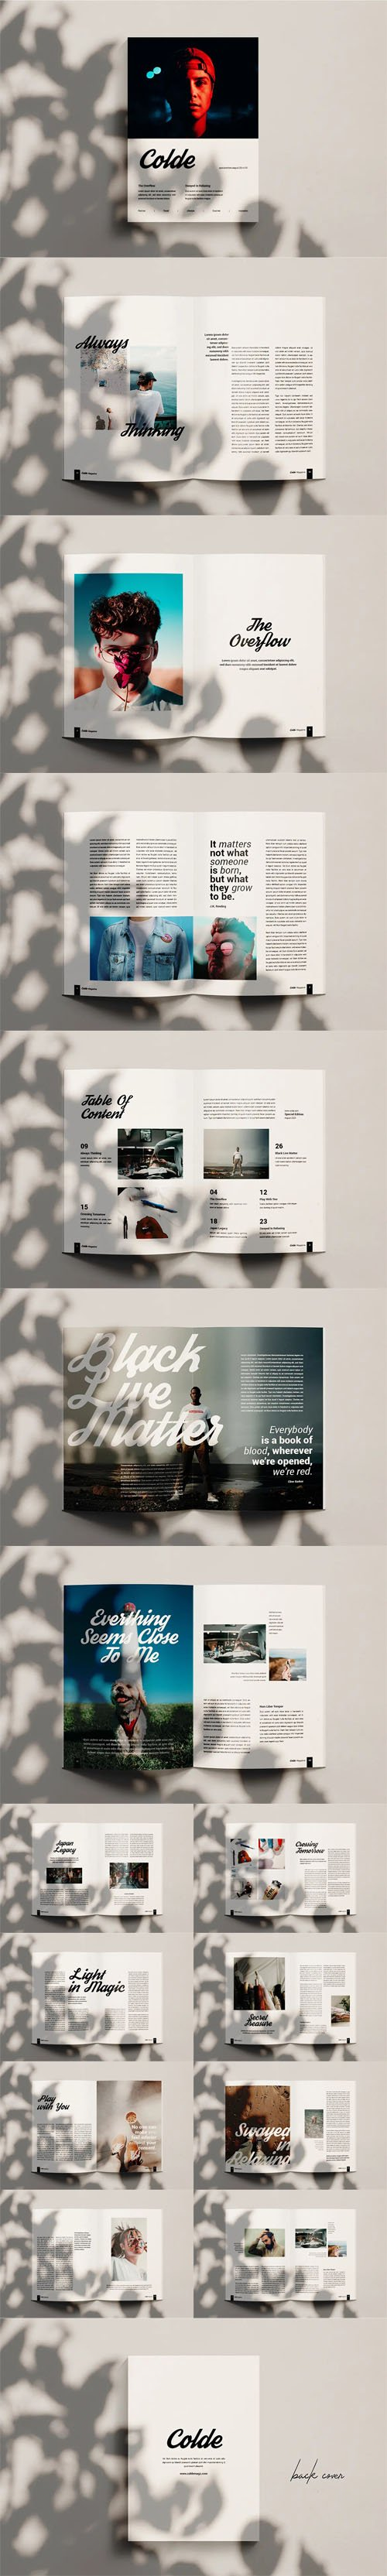 Colde - Fashion Magazine Indesign Template [A4/US Letter]